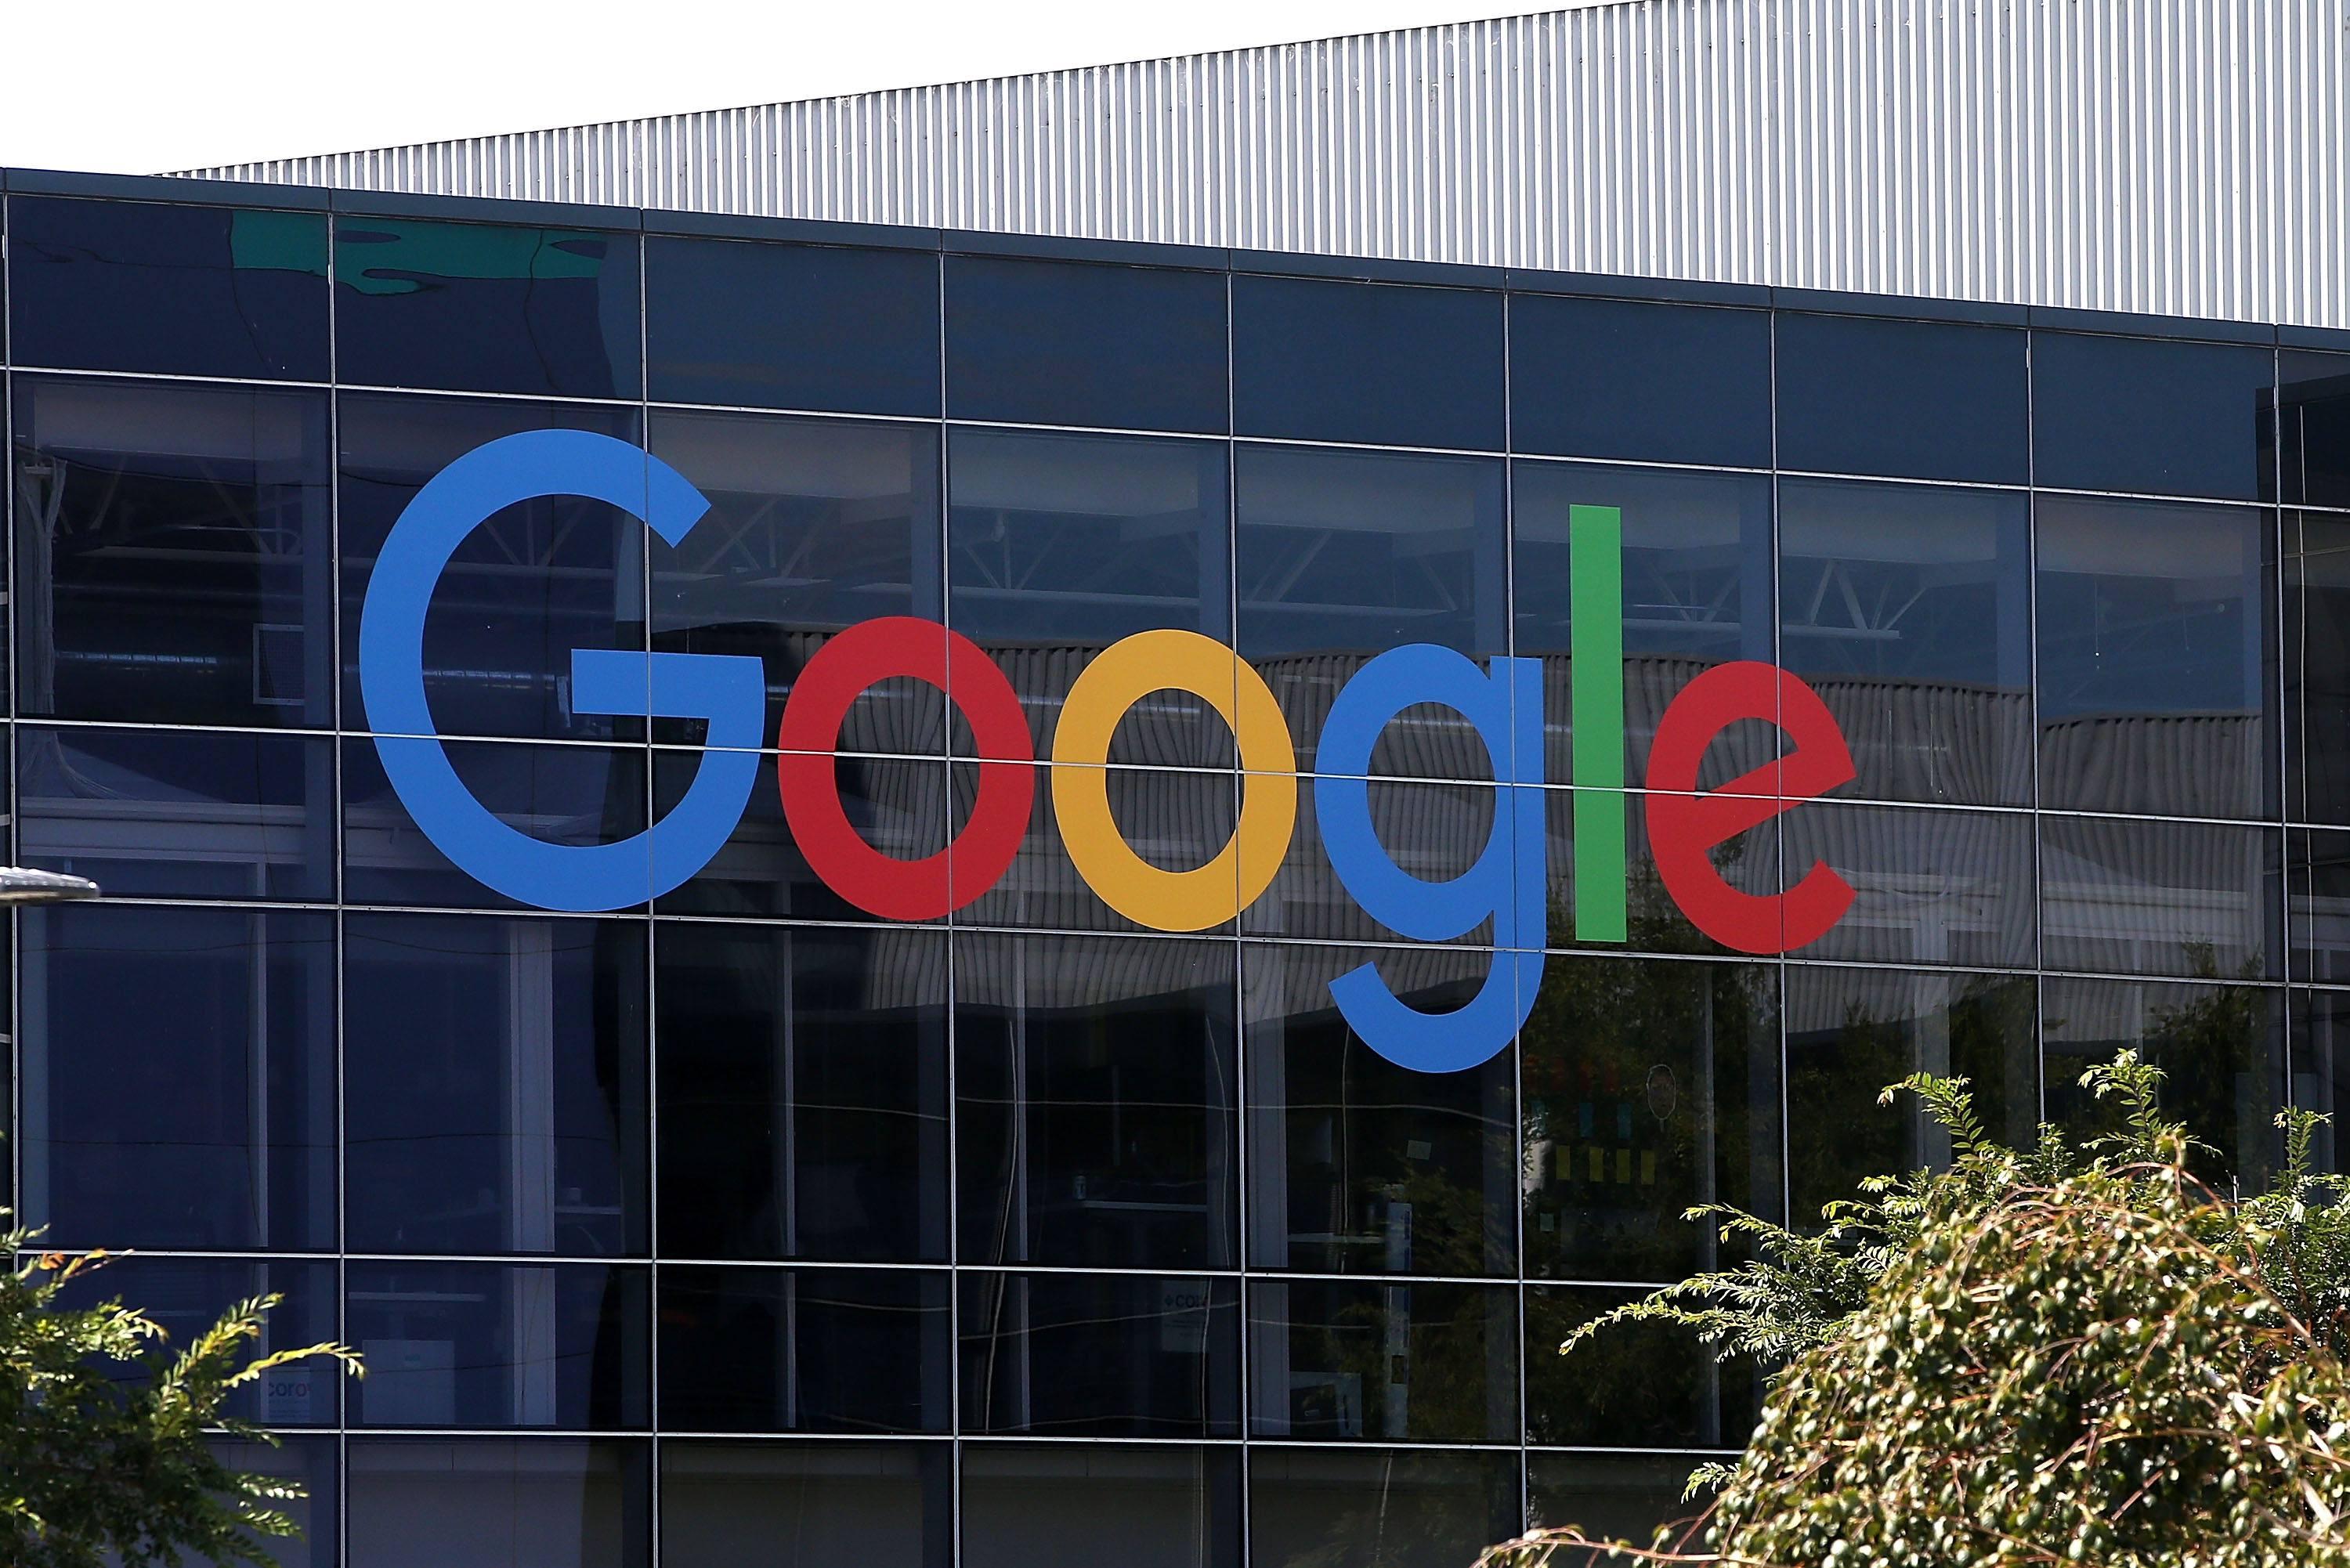 The new Google logo is displayed at the Google headquarters on Sept. 2, 2015 in Mountain View, California.